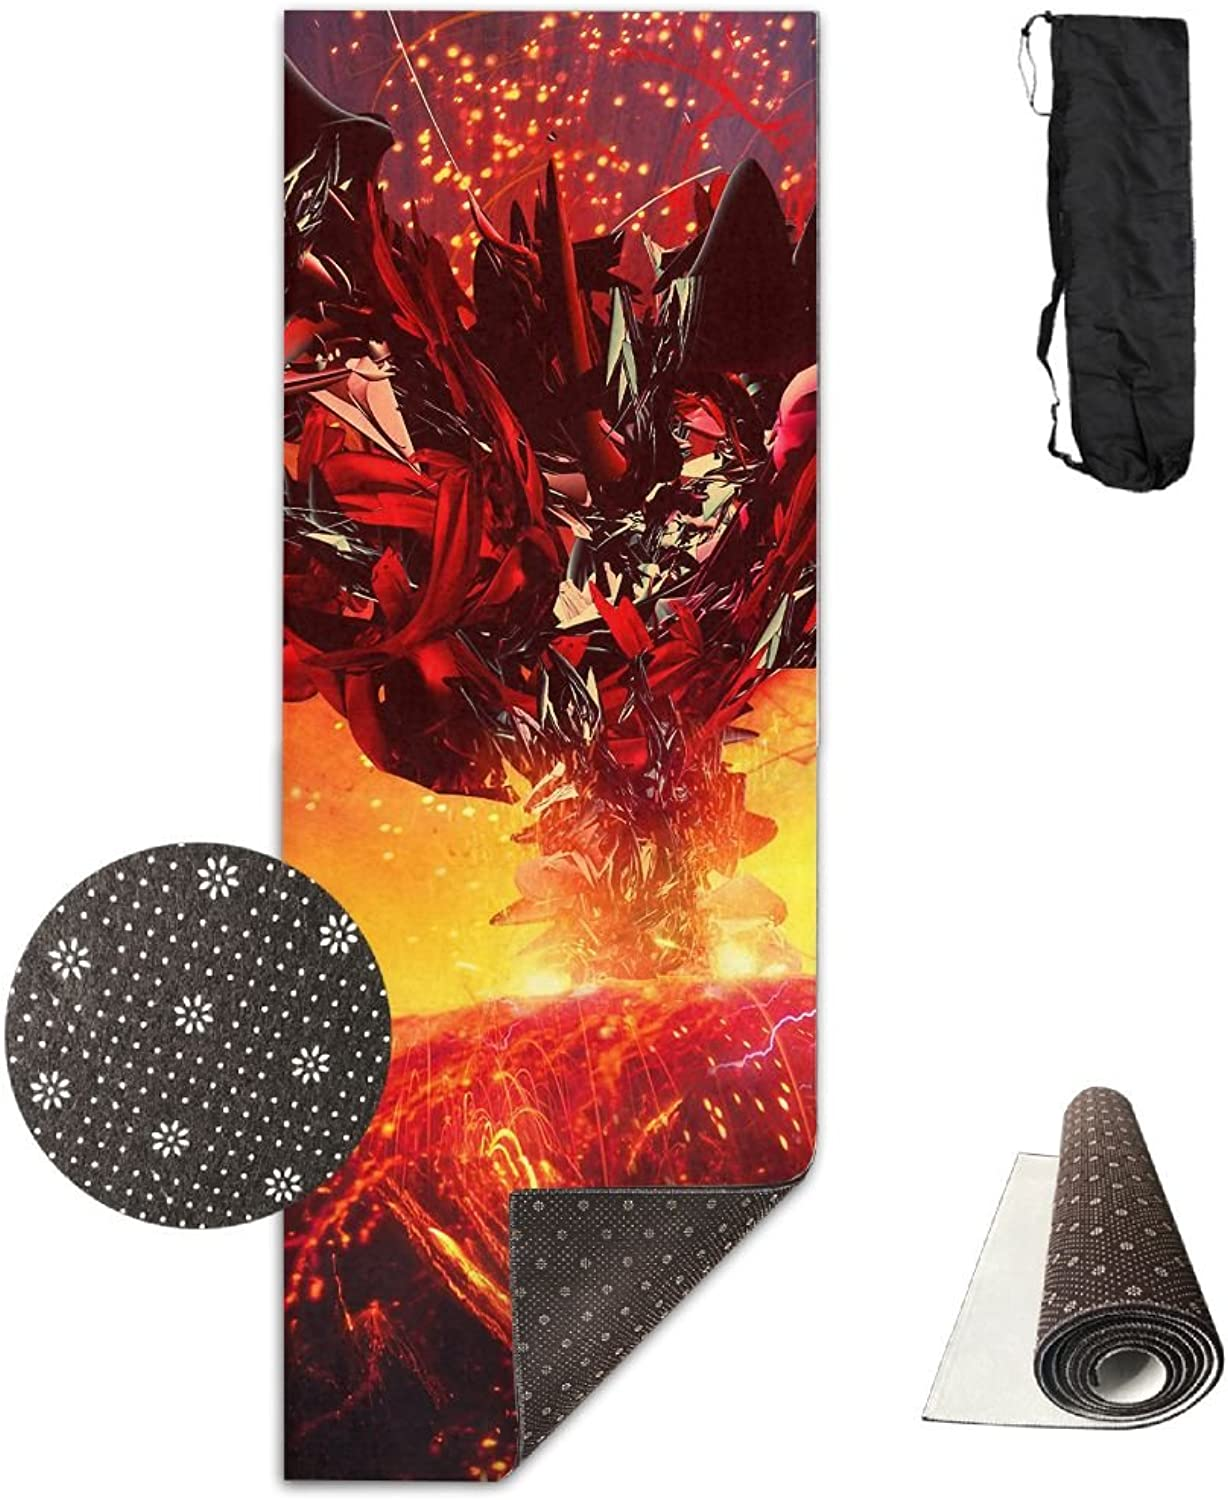 Gym Mat Volcano Eruption Fire Fitness High Density AntiTear Exercise Yoga Mat With Carrying Bag For Exercise,Pilates